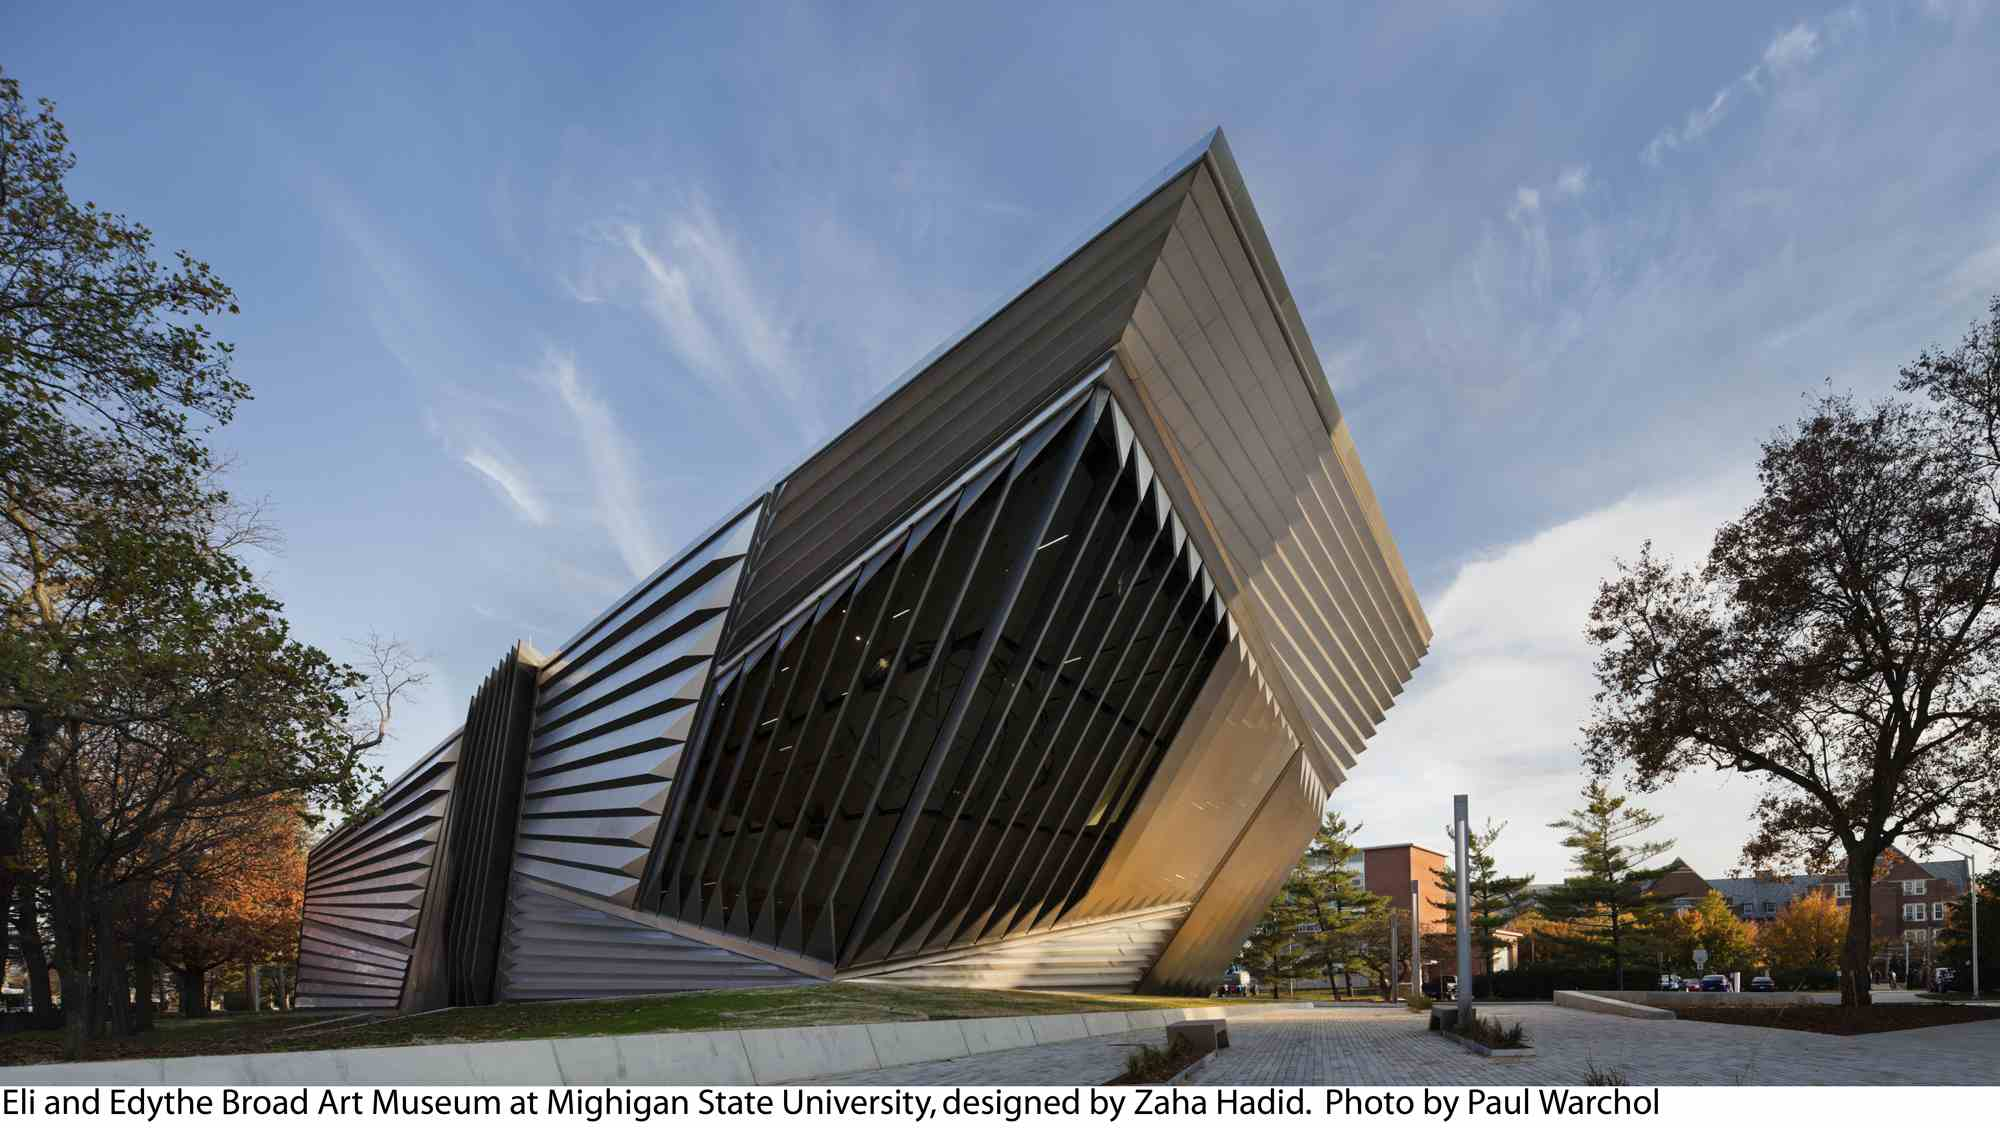 Grand opening of modern, horizontal, steel and glass art museum at Michigan State, 2012